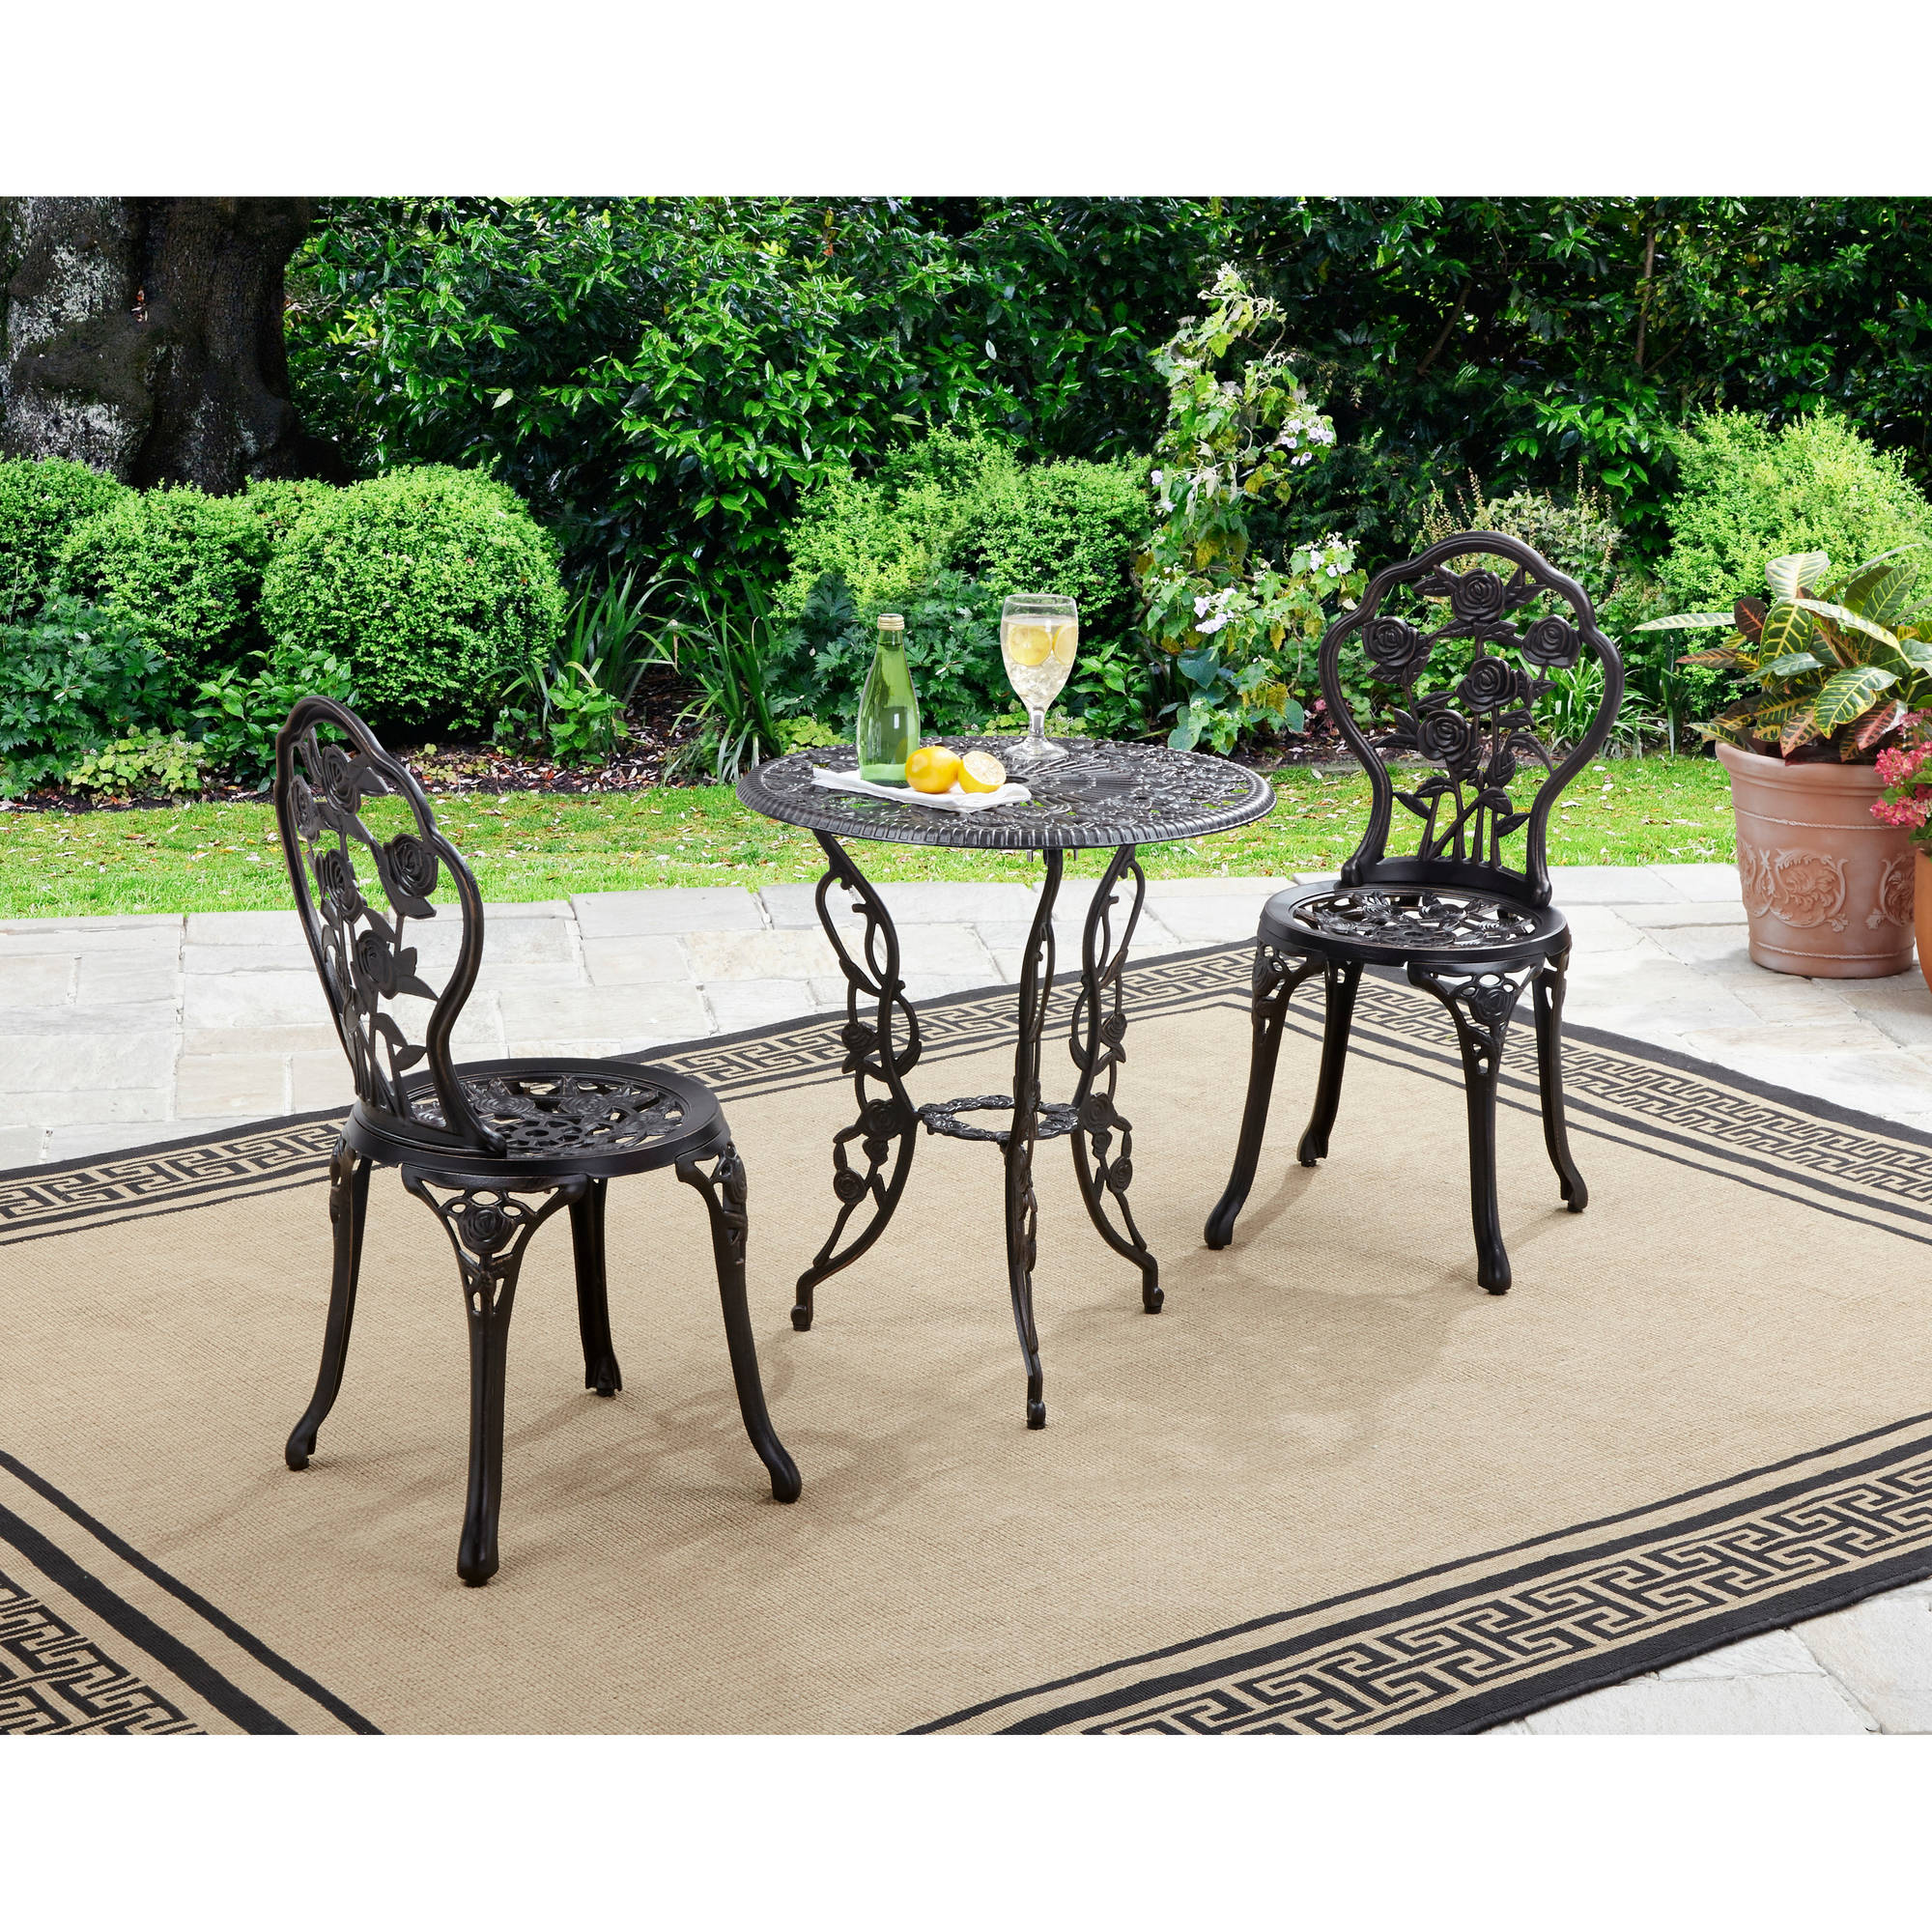 Better Homes and Gardens Rose 3 Piece Outdoor Bistro Set